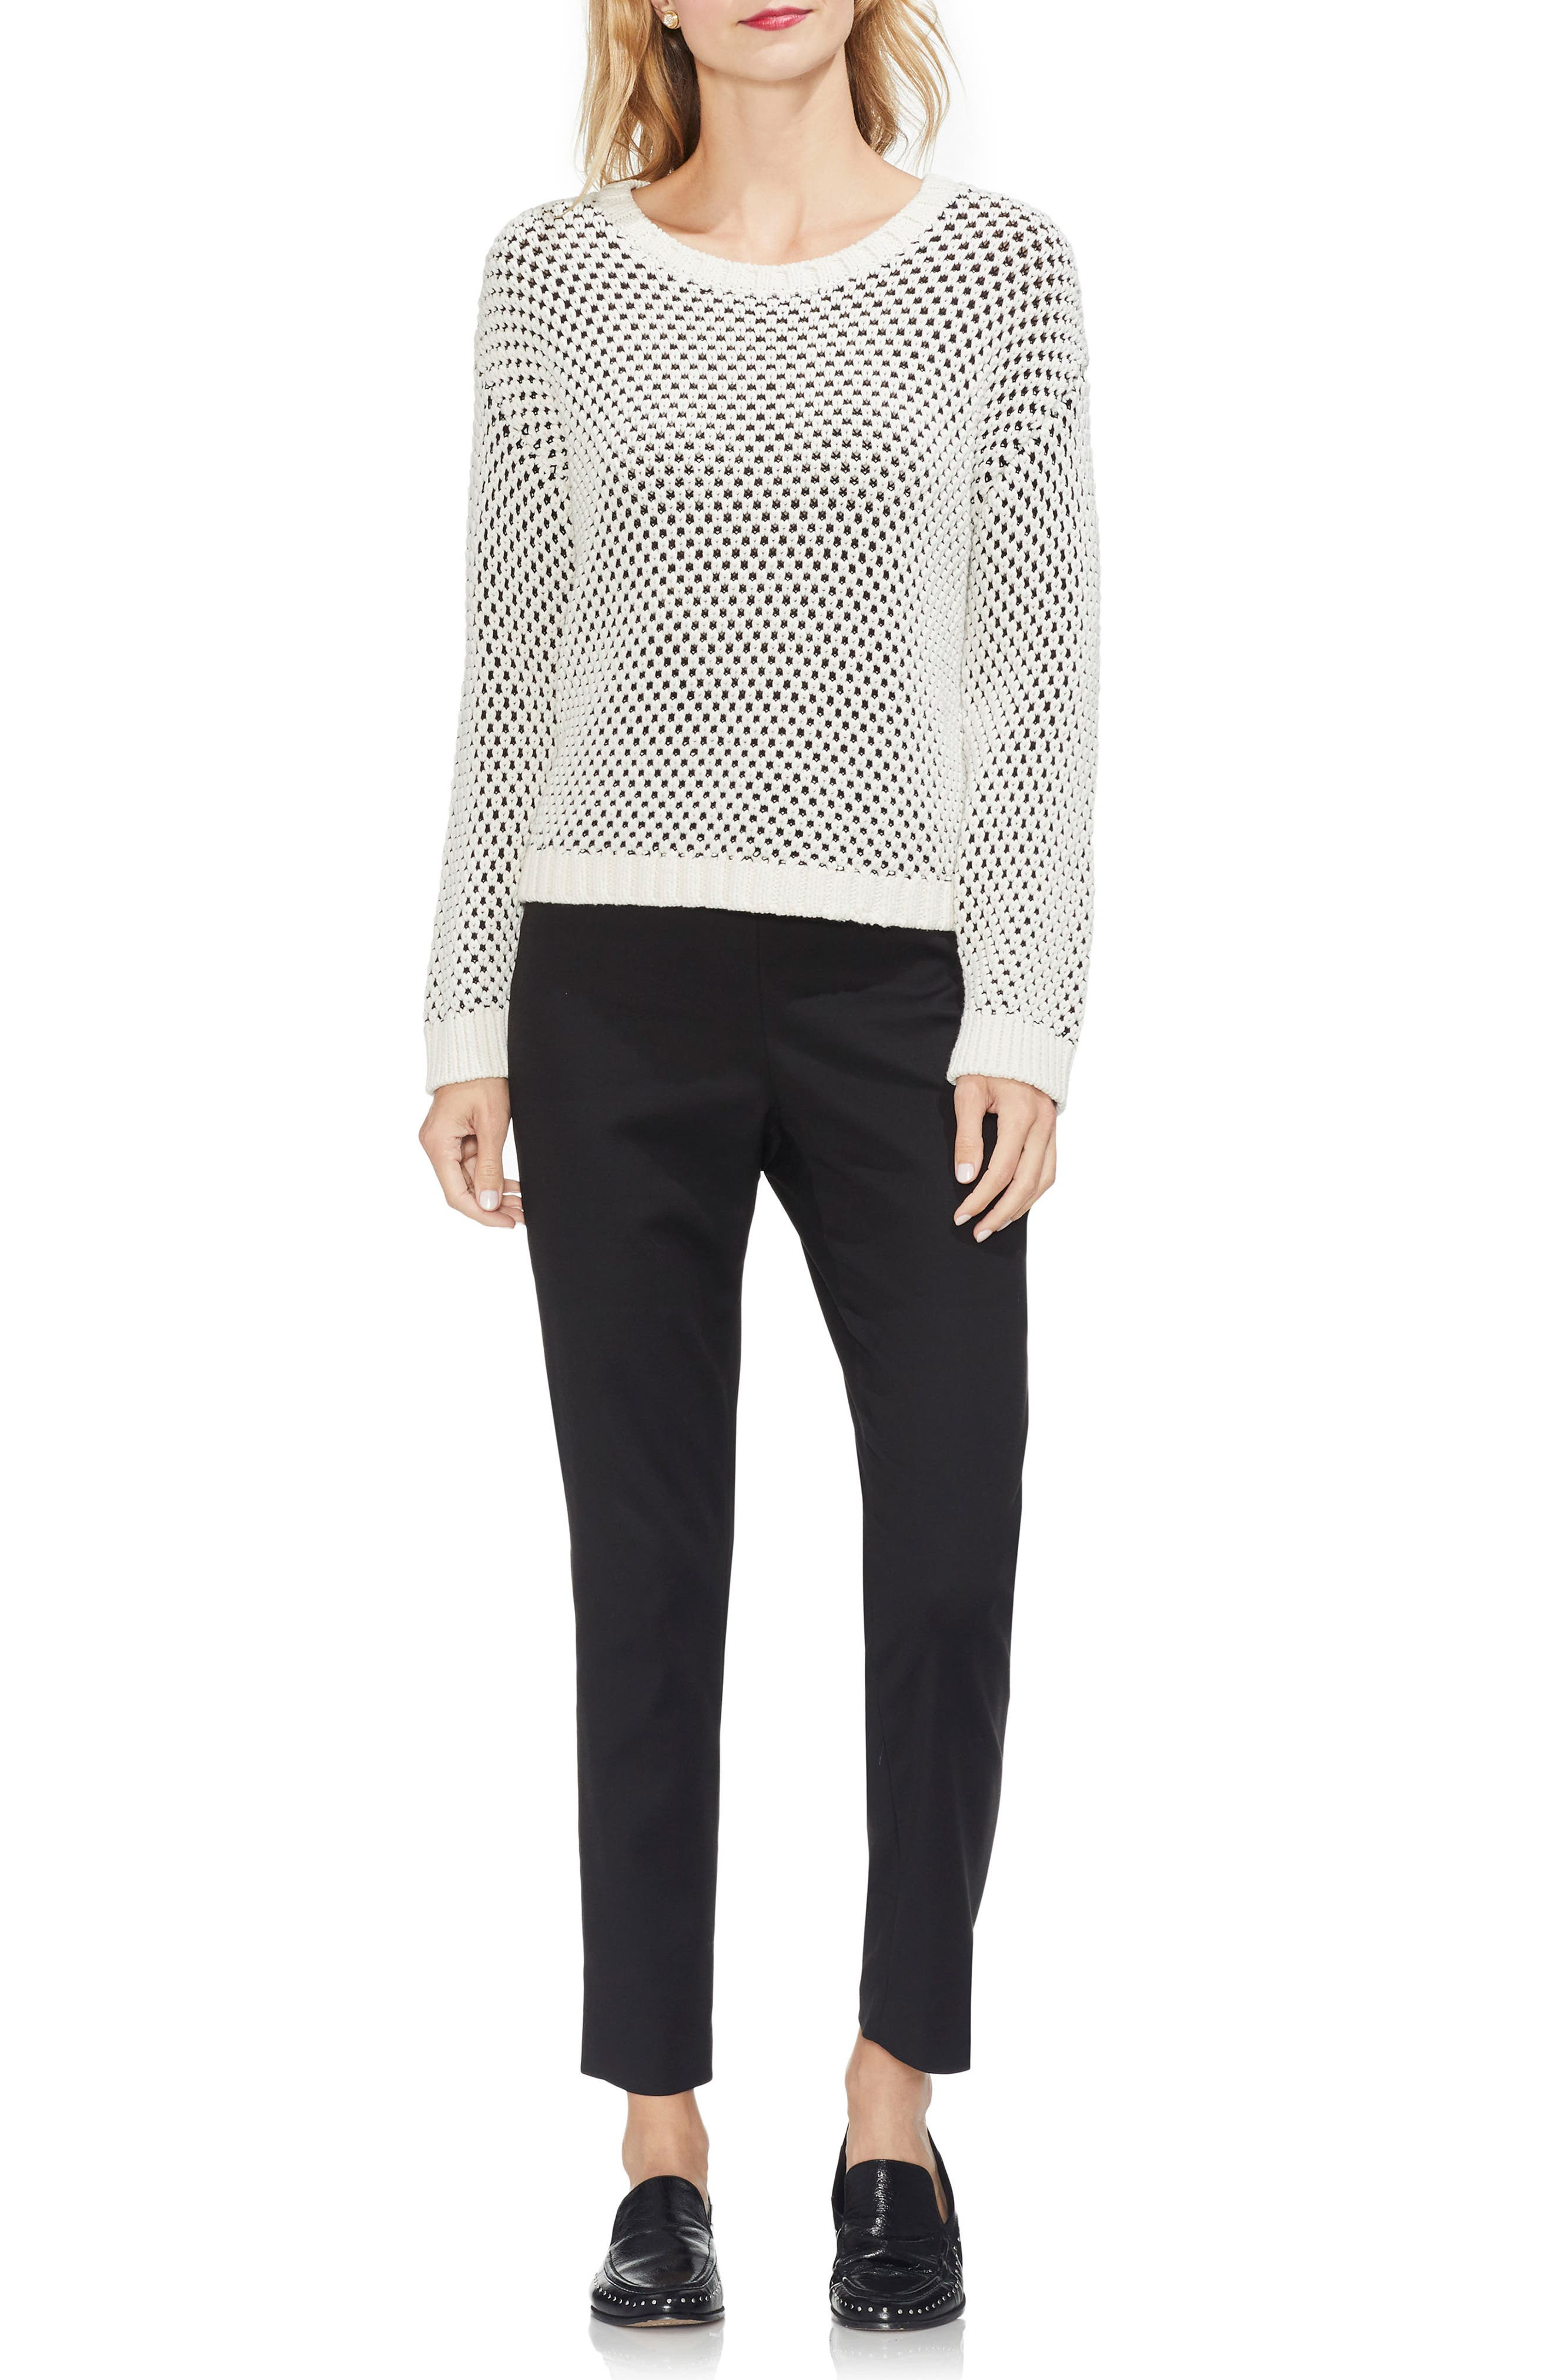 VINCE CAMUTO,                             Textured Stitch Sweater,                             Alternate thumbnail 3, color,                             ANTIQUE WHITE